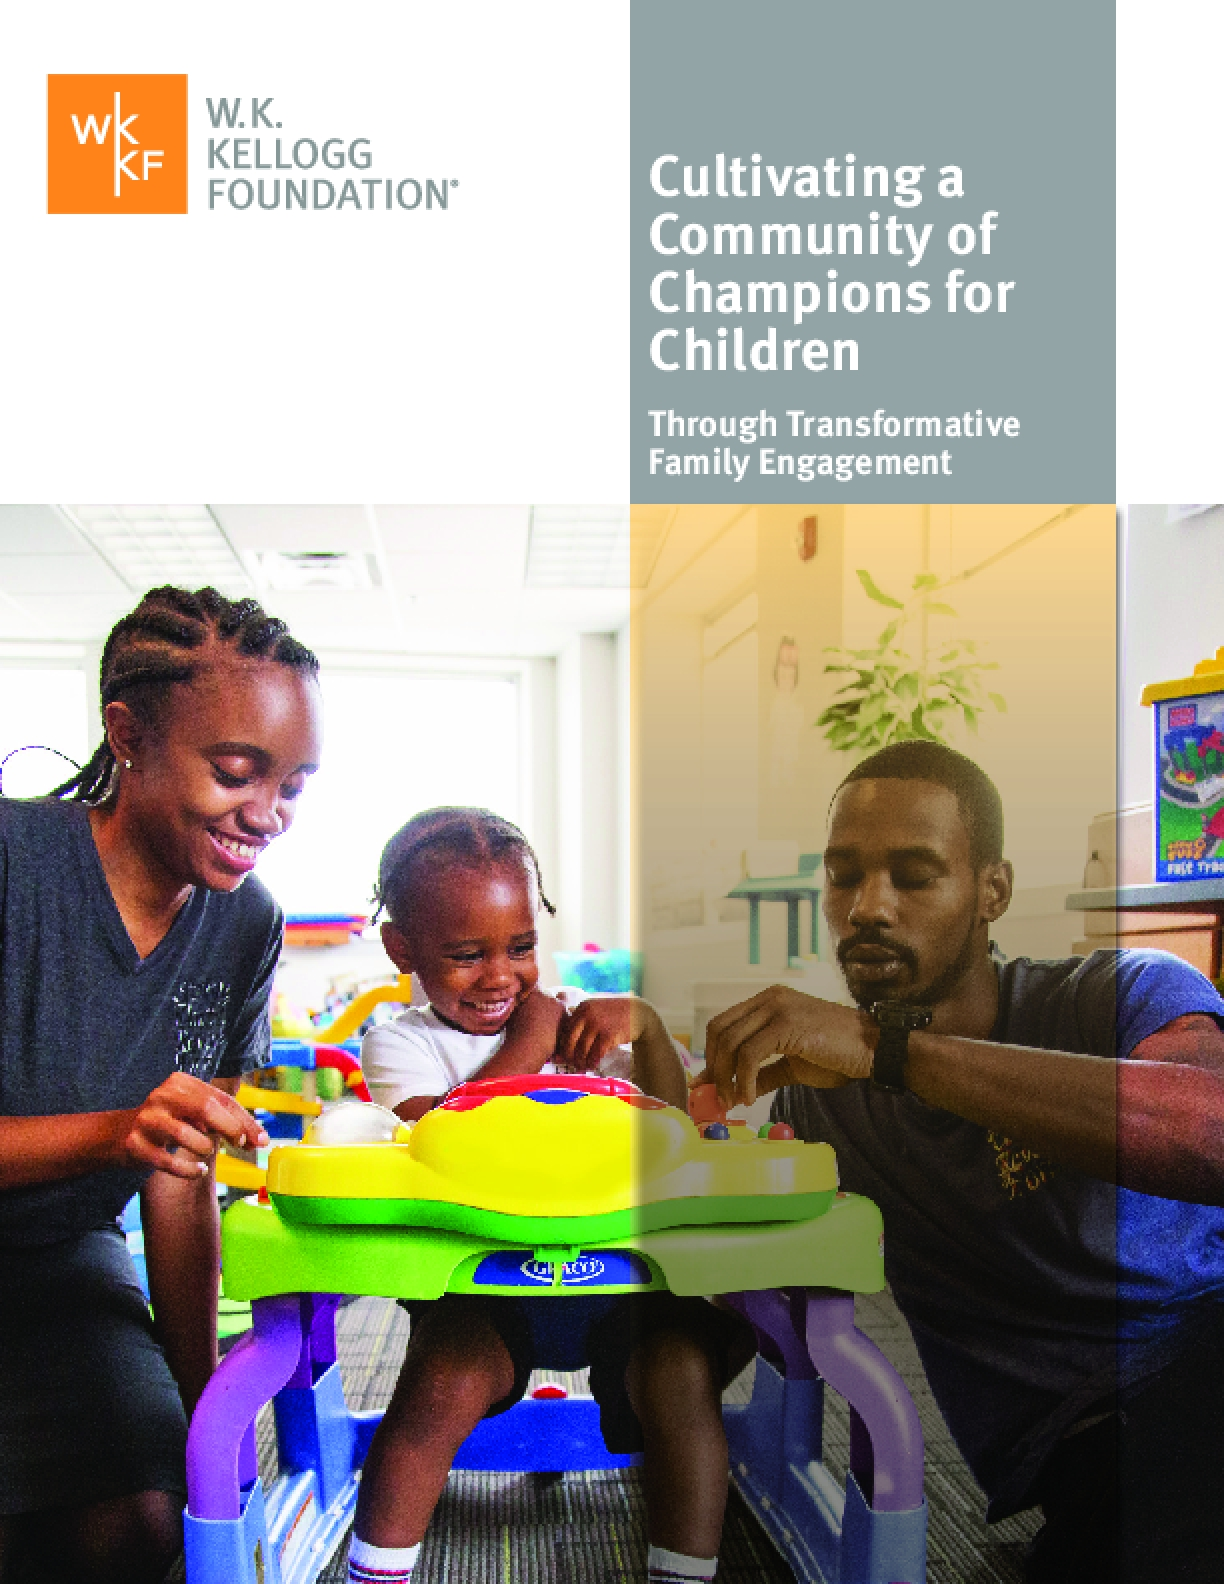 Cultivating a Community of Champions for Children: Through Transformative Family Engagement